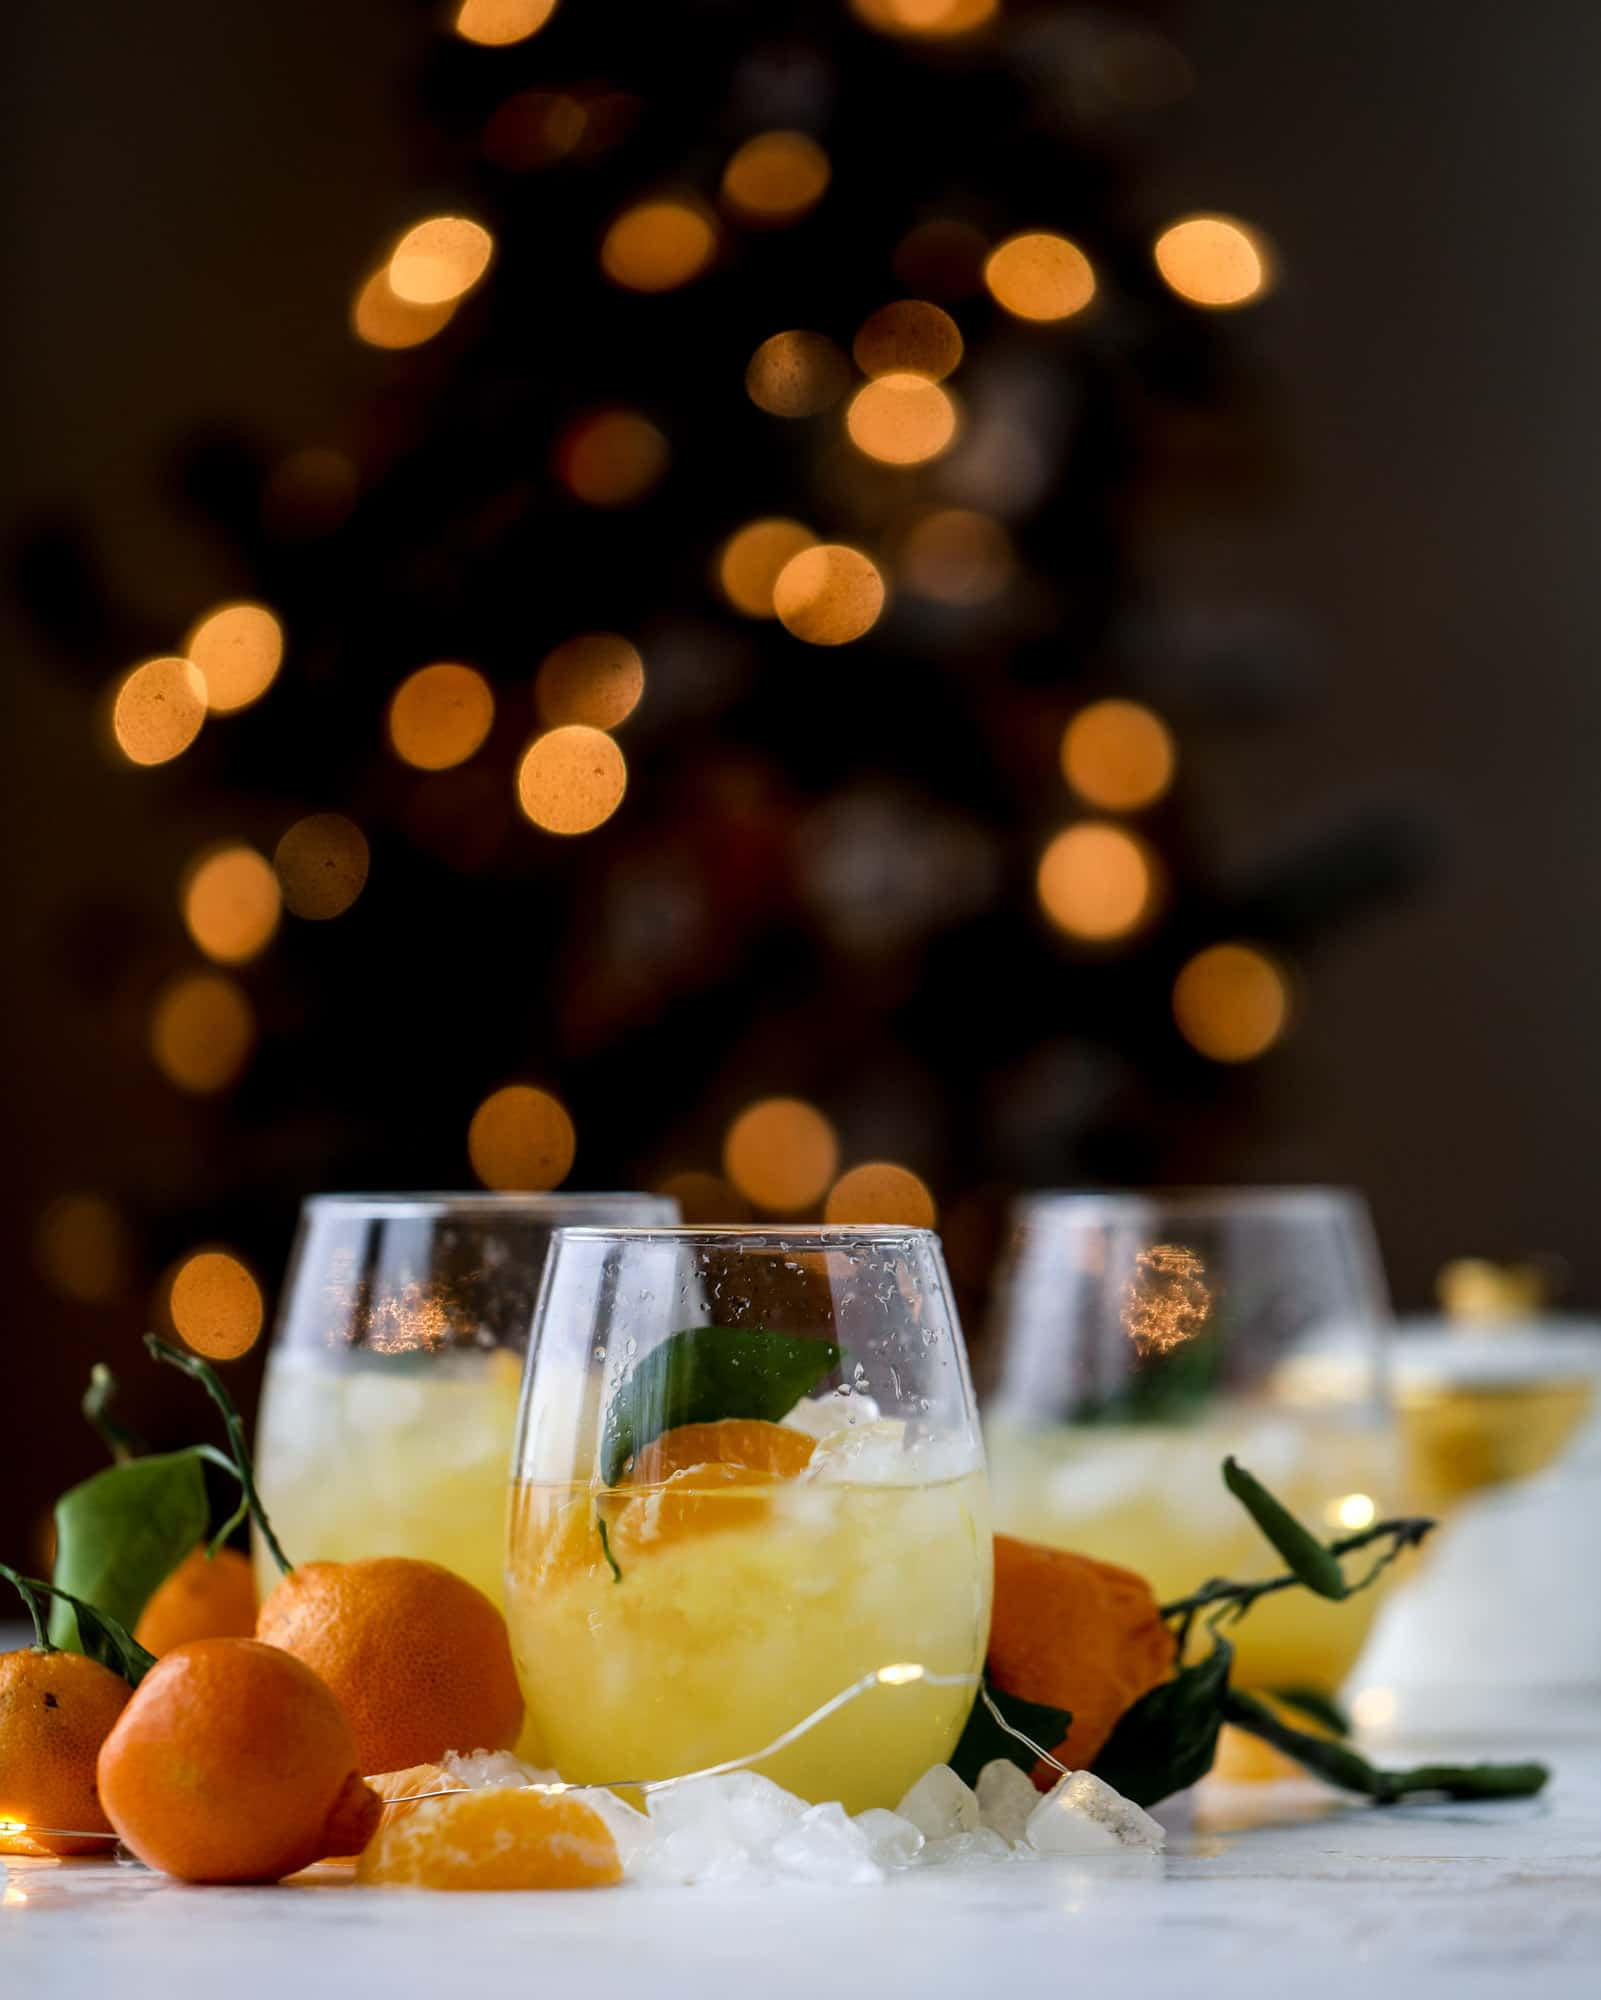 This satsuma cocktail is perfect for the holiday season and winter months when sweet satsumas are in season! This cocktail uses gin or vodka and is topped with champagne and garnished with a few satsuma wedges. Delicious! I howsweeteats.com #satsuma #cocktail